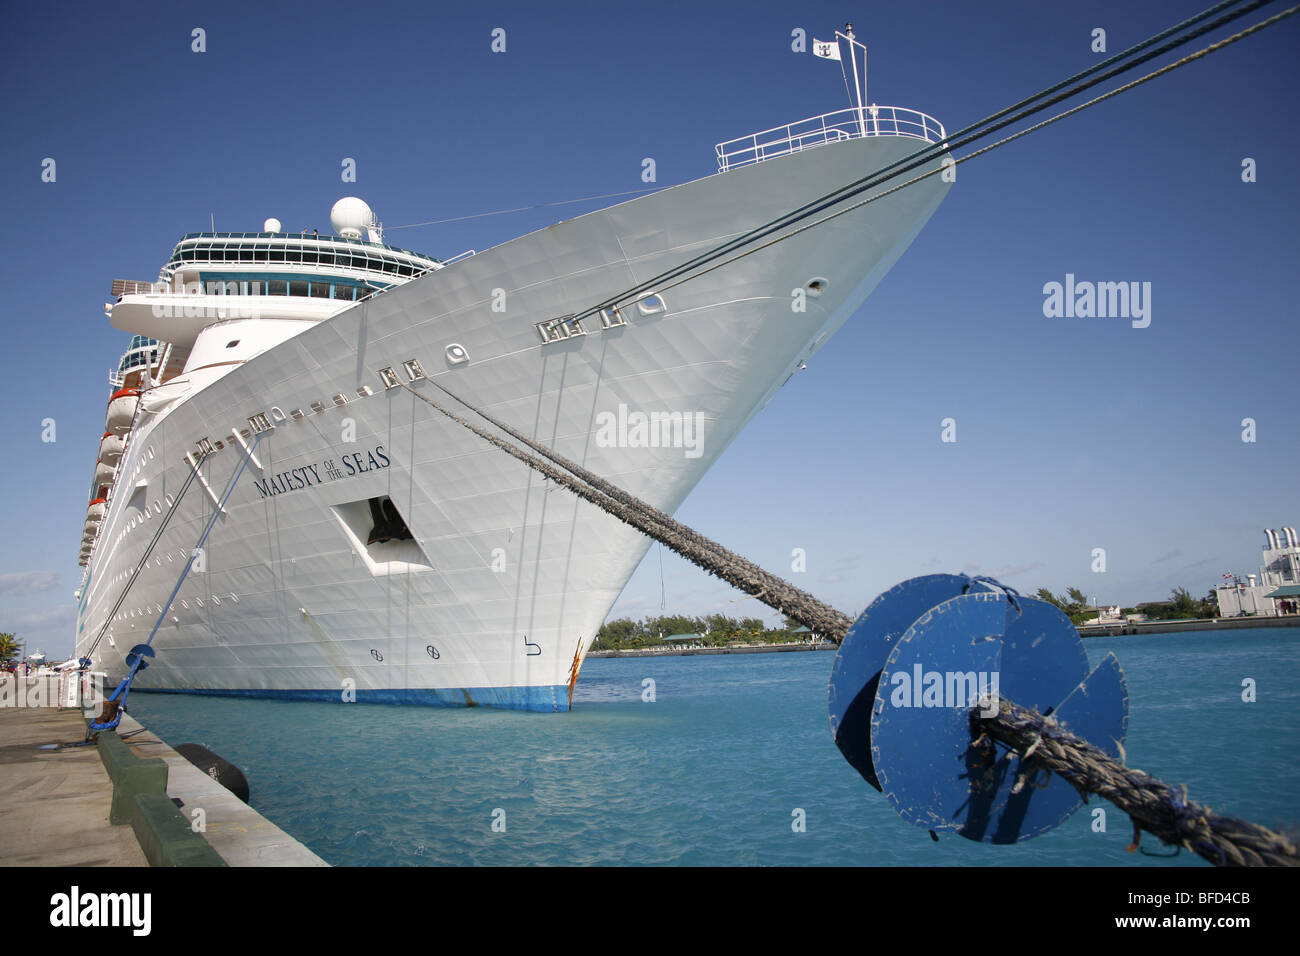 majesty of the seas cruise ship in nassau harbour new